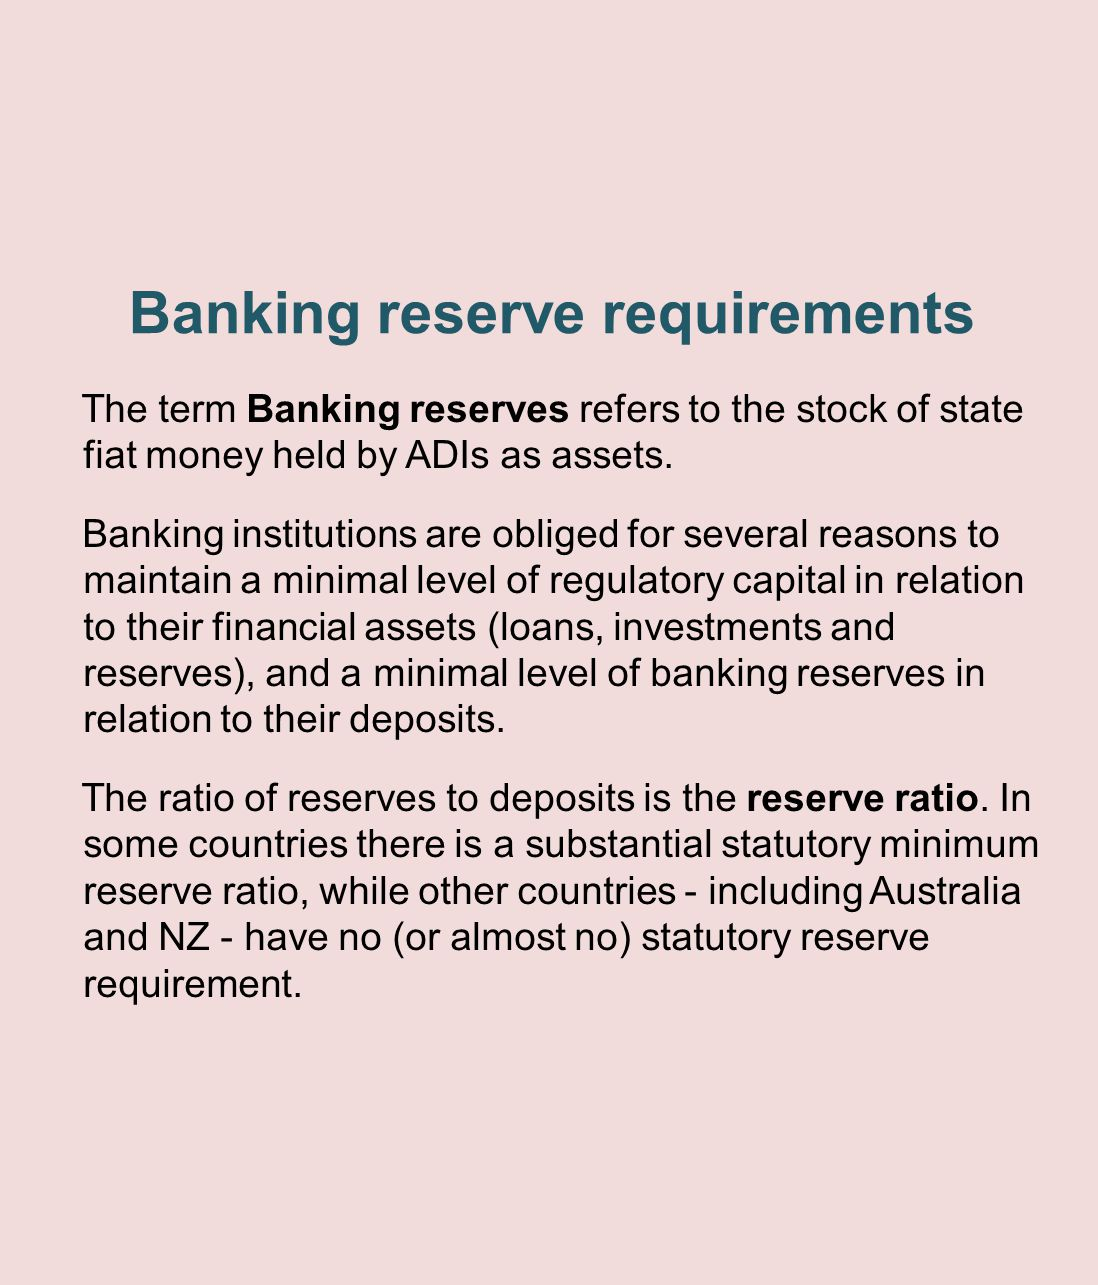 Banking reserve requirements The term Banking reserves refers to the stock of state fiat money held by ADIs as assets. Banking institutions are oblige